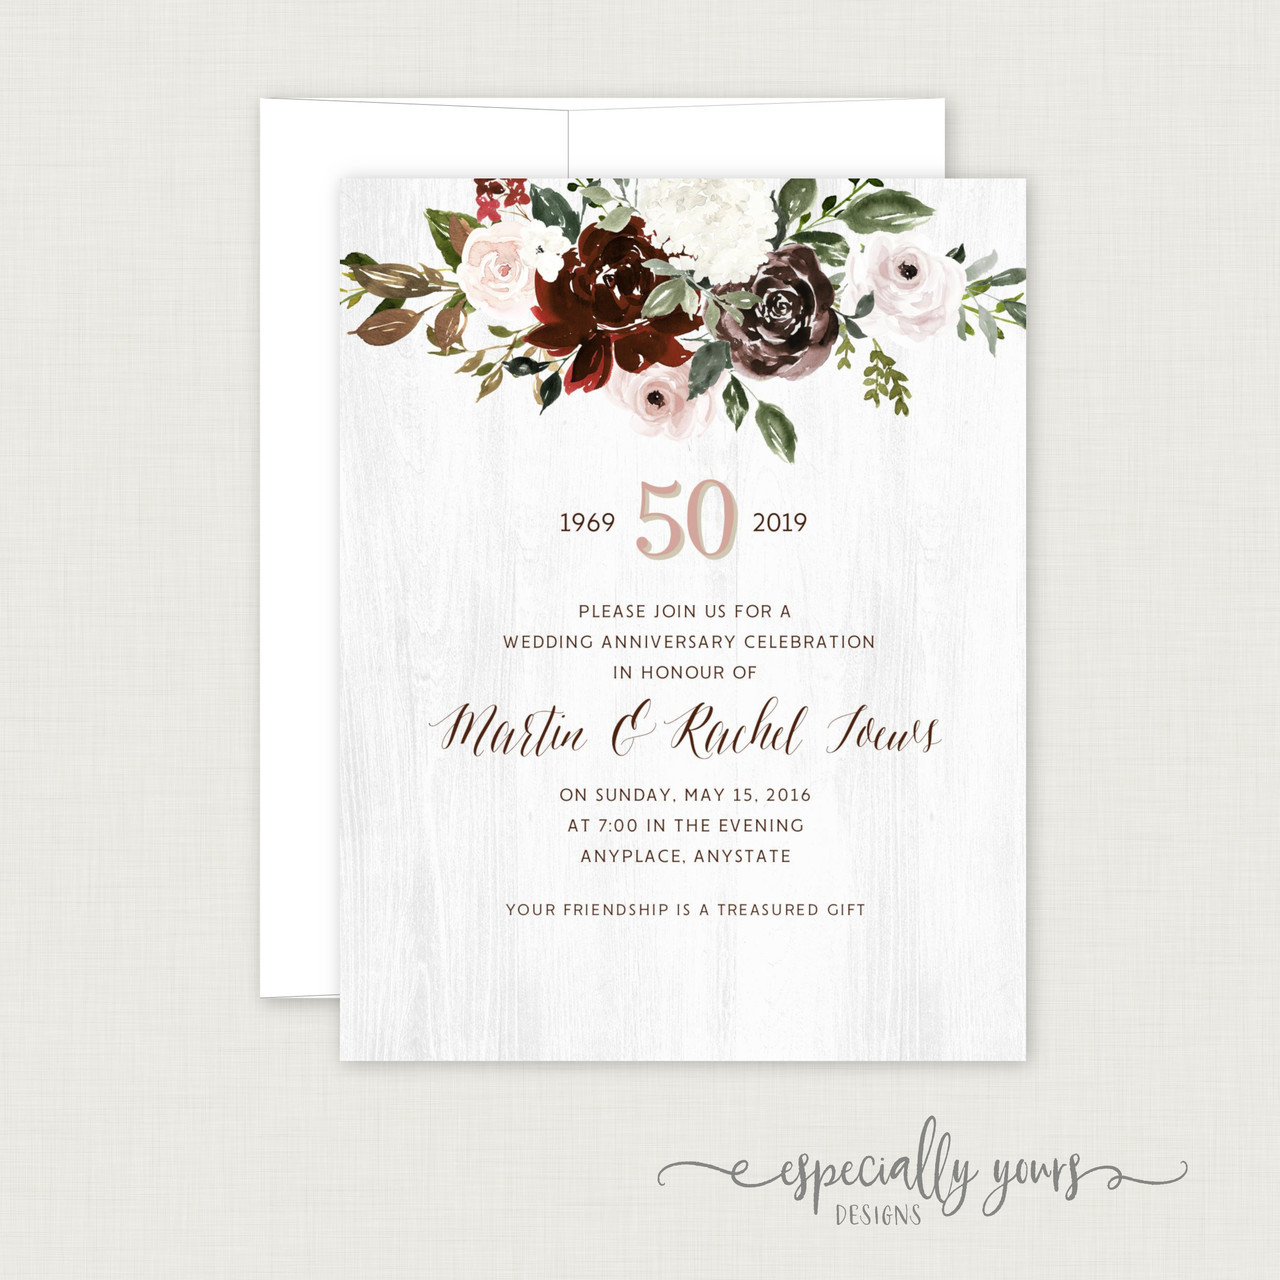 Burgundy Blush Floral Wedding Anniversary Celebration Invitations